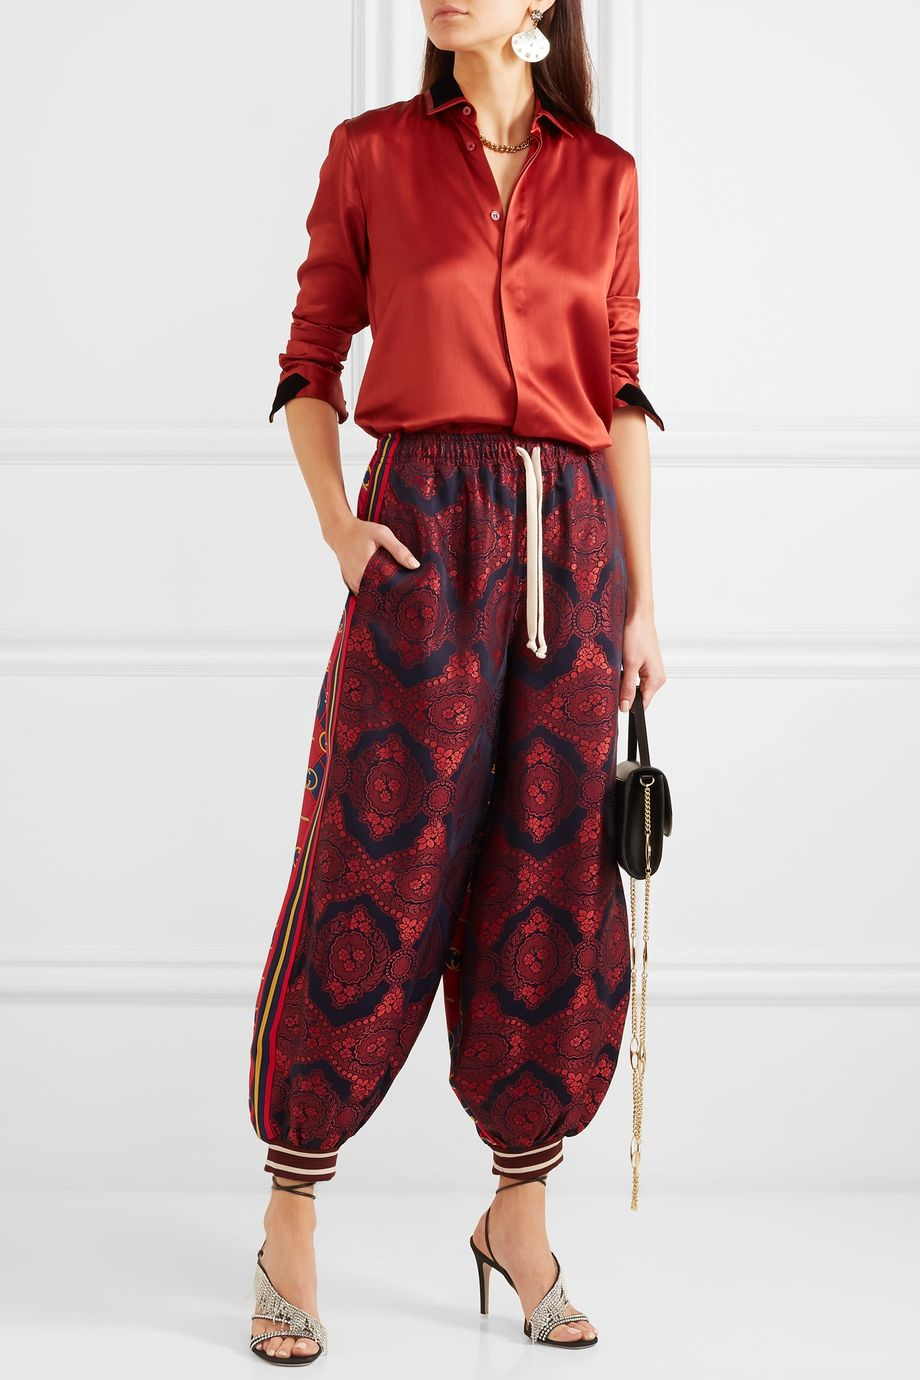 Gucci Floral-jacquard and printed silk-twill pants